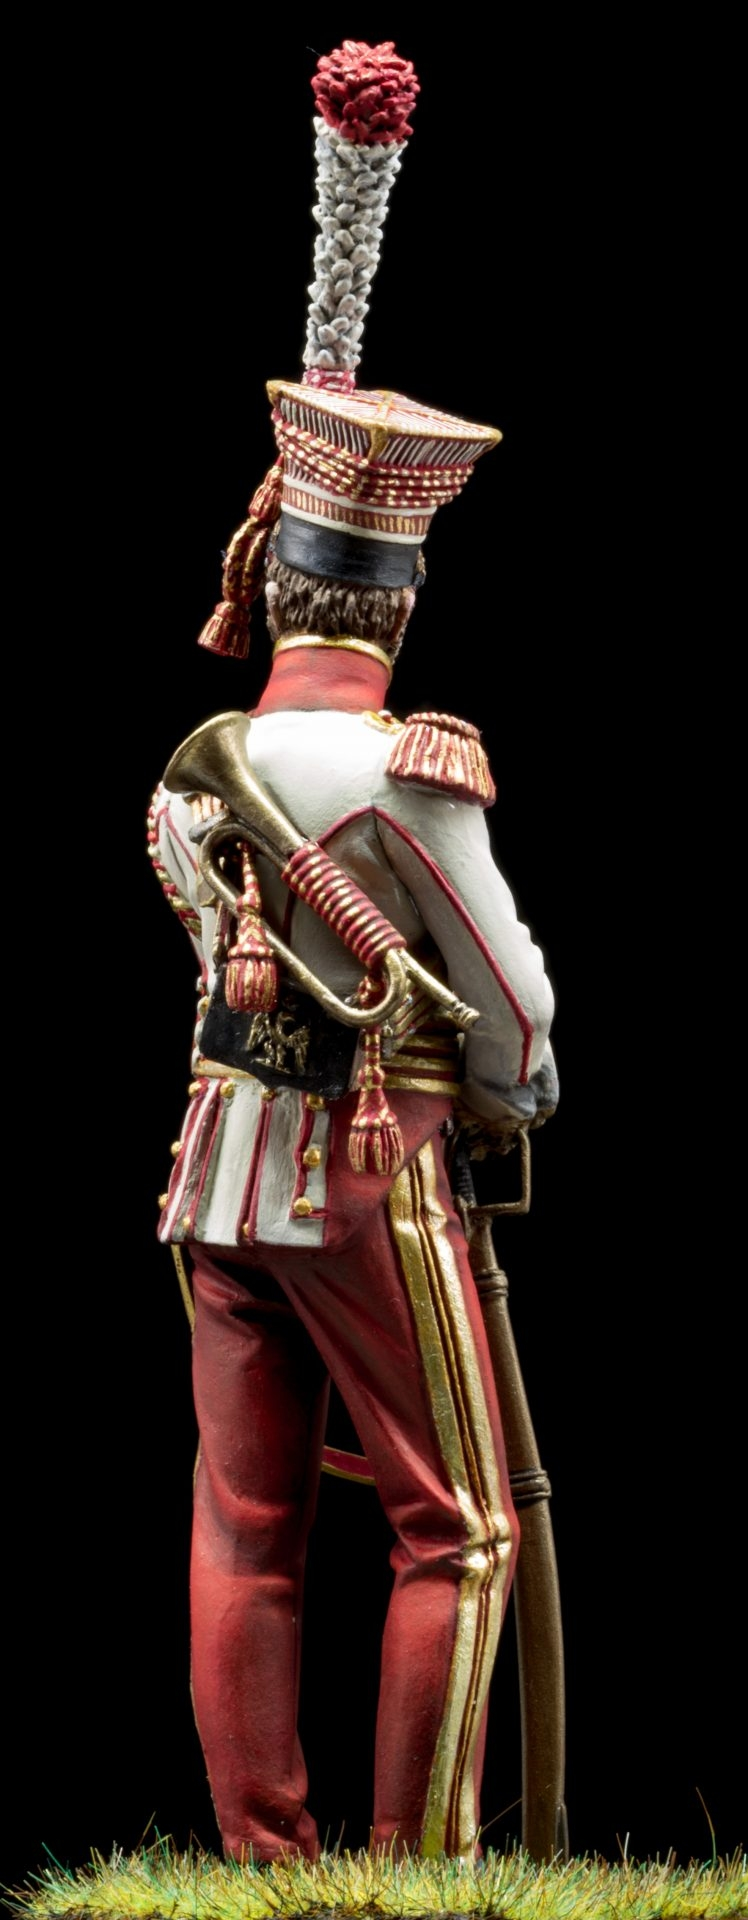 Trumpeter-2nd-Rgt.-Lancers-of-the-Guard-08